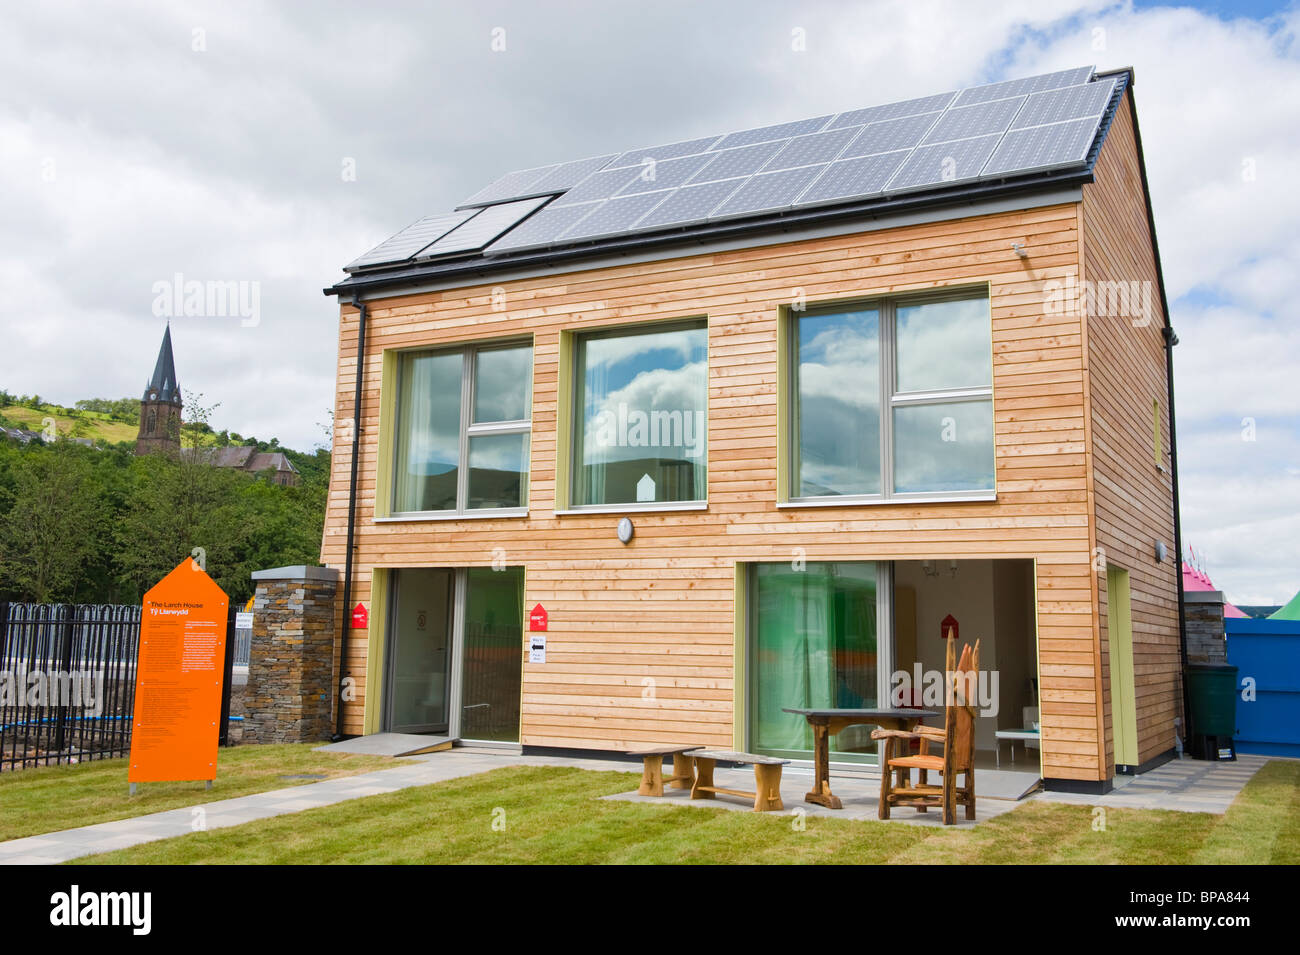 Timber clad zero carbon passive house with triple glazed windows & roof covered with solar panels for electricity Stock Photo